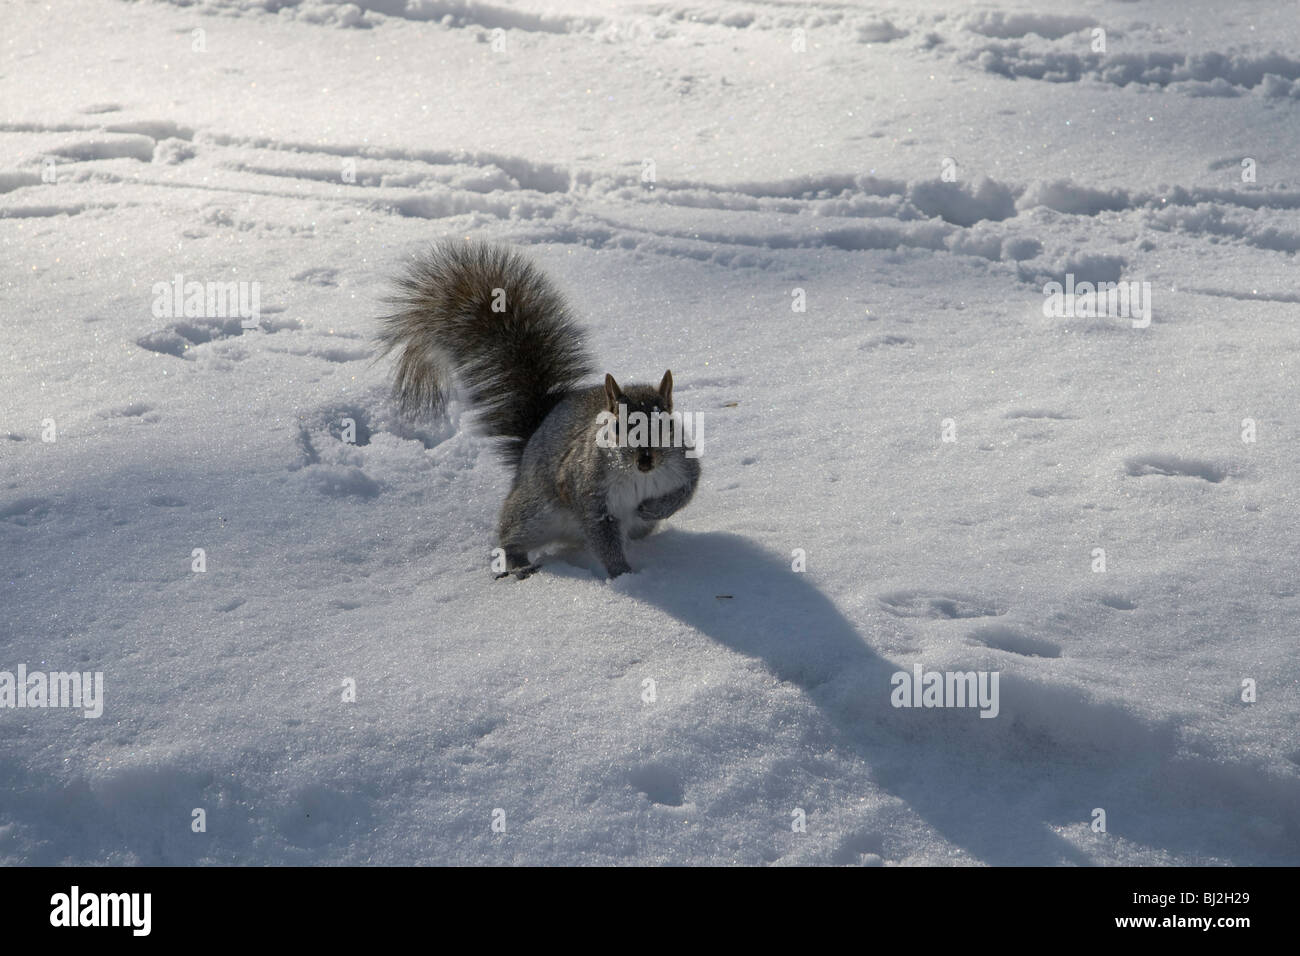 An inquisitive gray squirrel playing in the snow in New York's Central Park - Stock Image